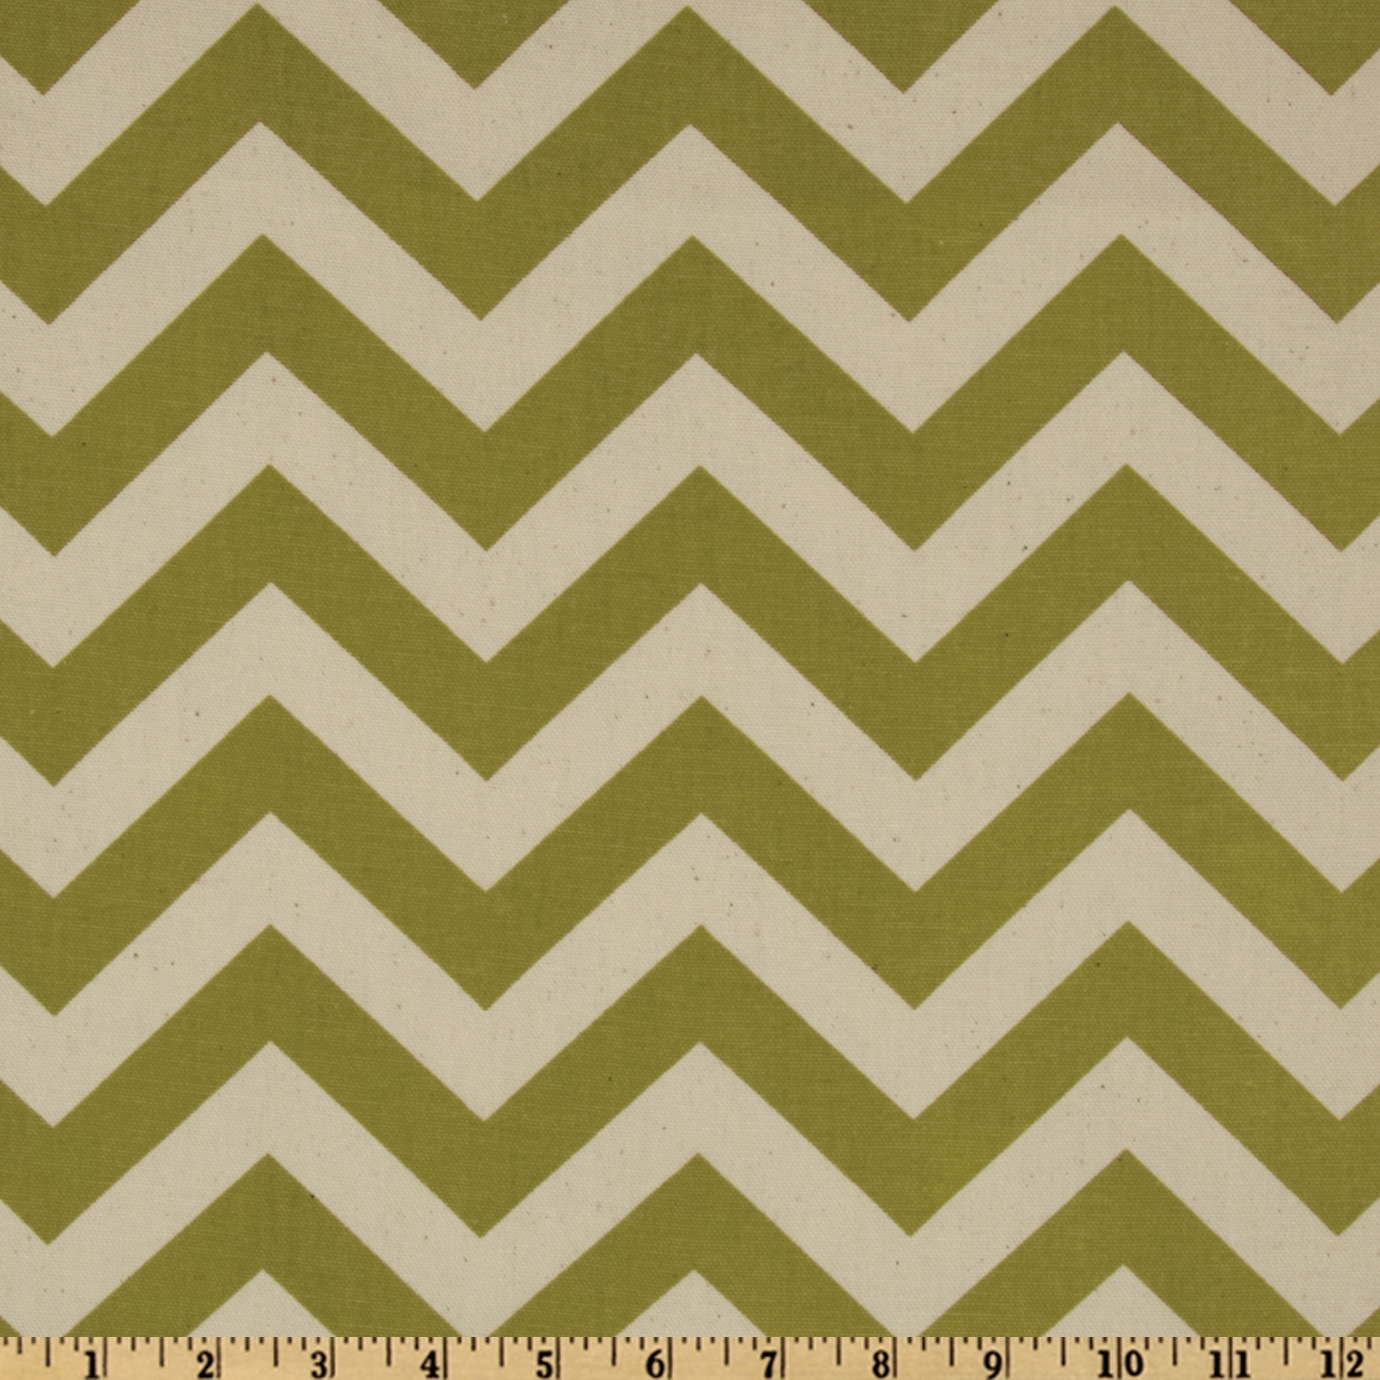 Premier Prints Zig Zag Village Green/Natural Fabric